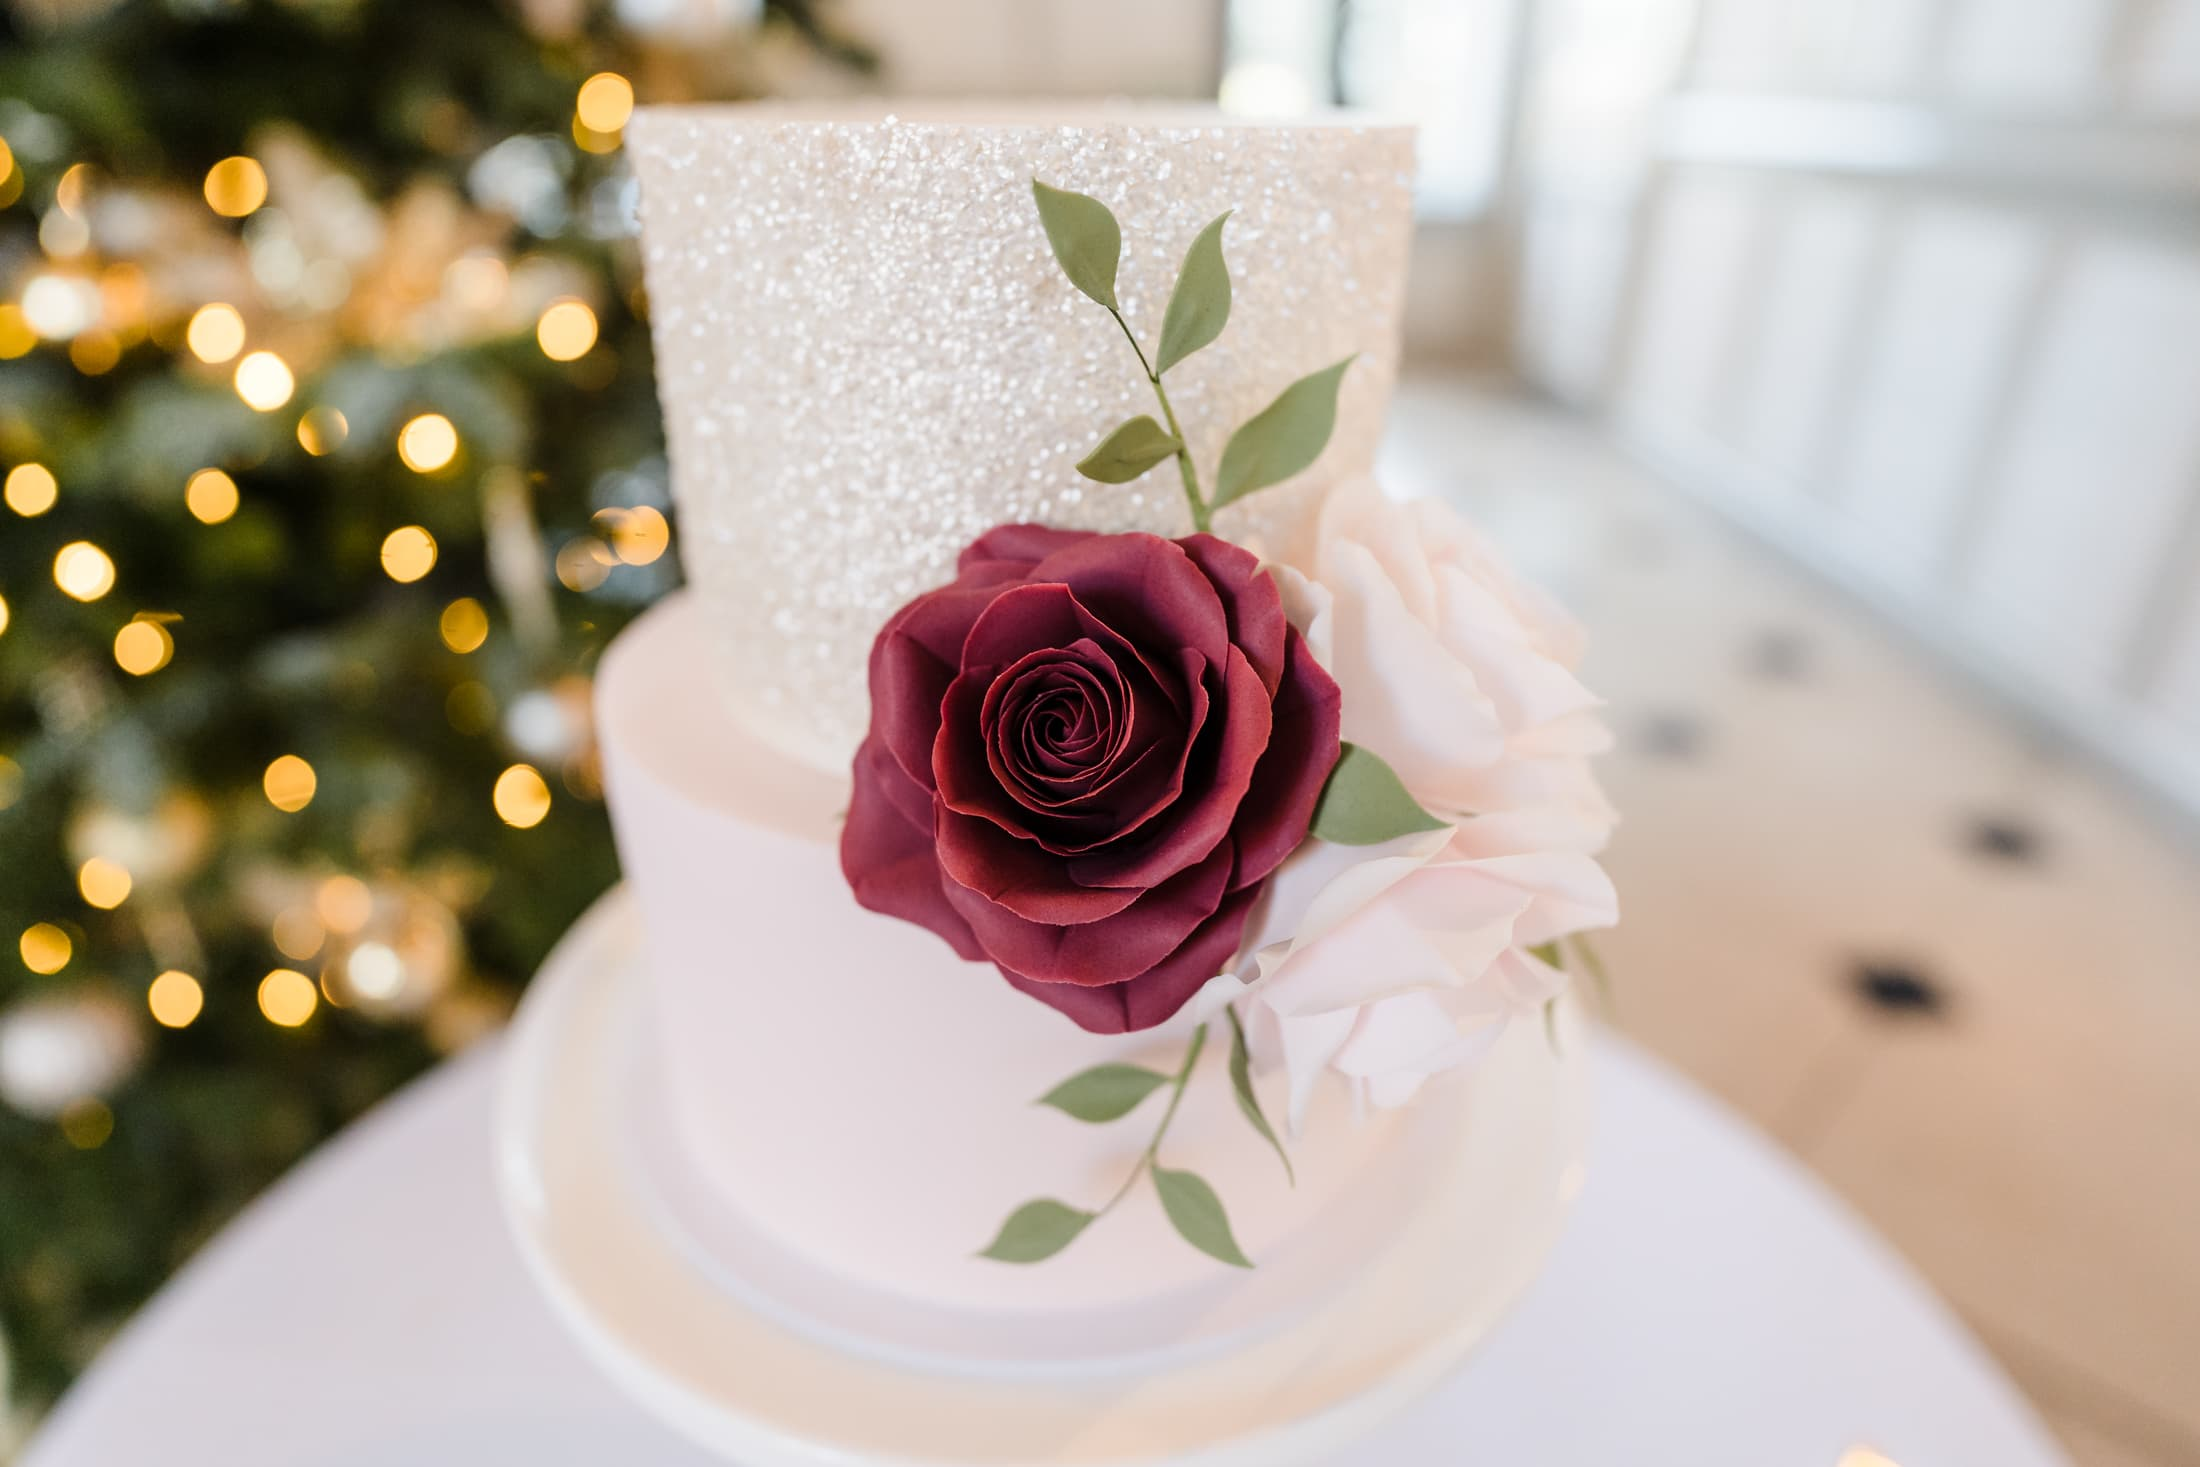 Wedding cake by crumbs creations - questions to ask your wedding cake maker